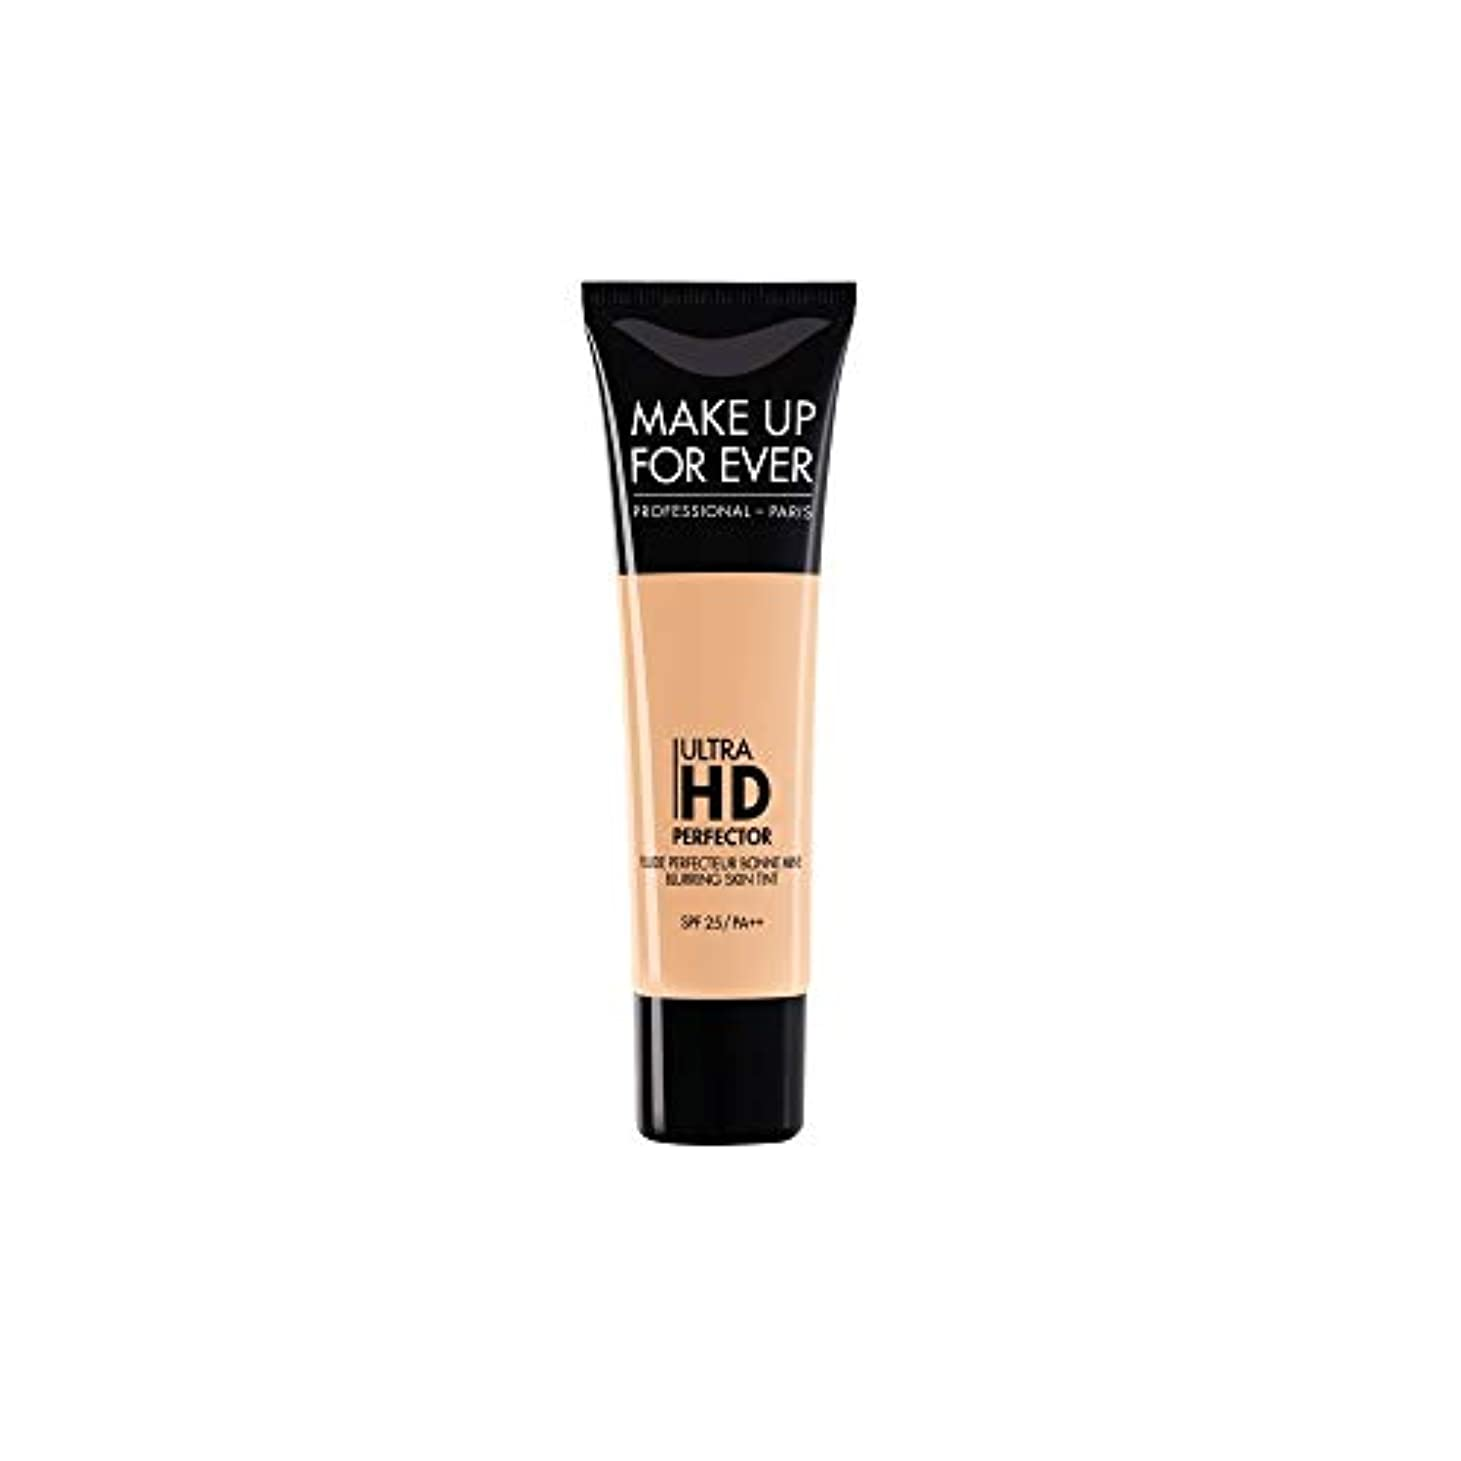 メイクアップフォーエバー Ultra HD Perfector Blurring Skin Tint SPF25 - # 05 Sand 30ml/1.01oz並行輸入品